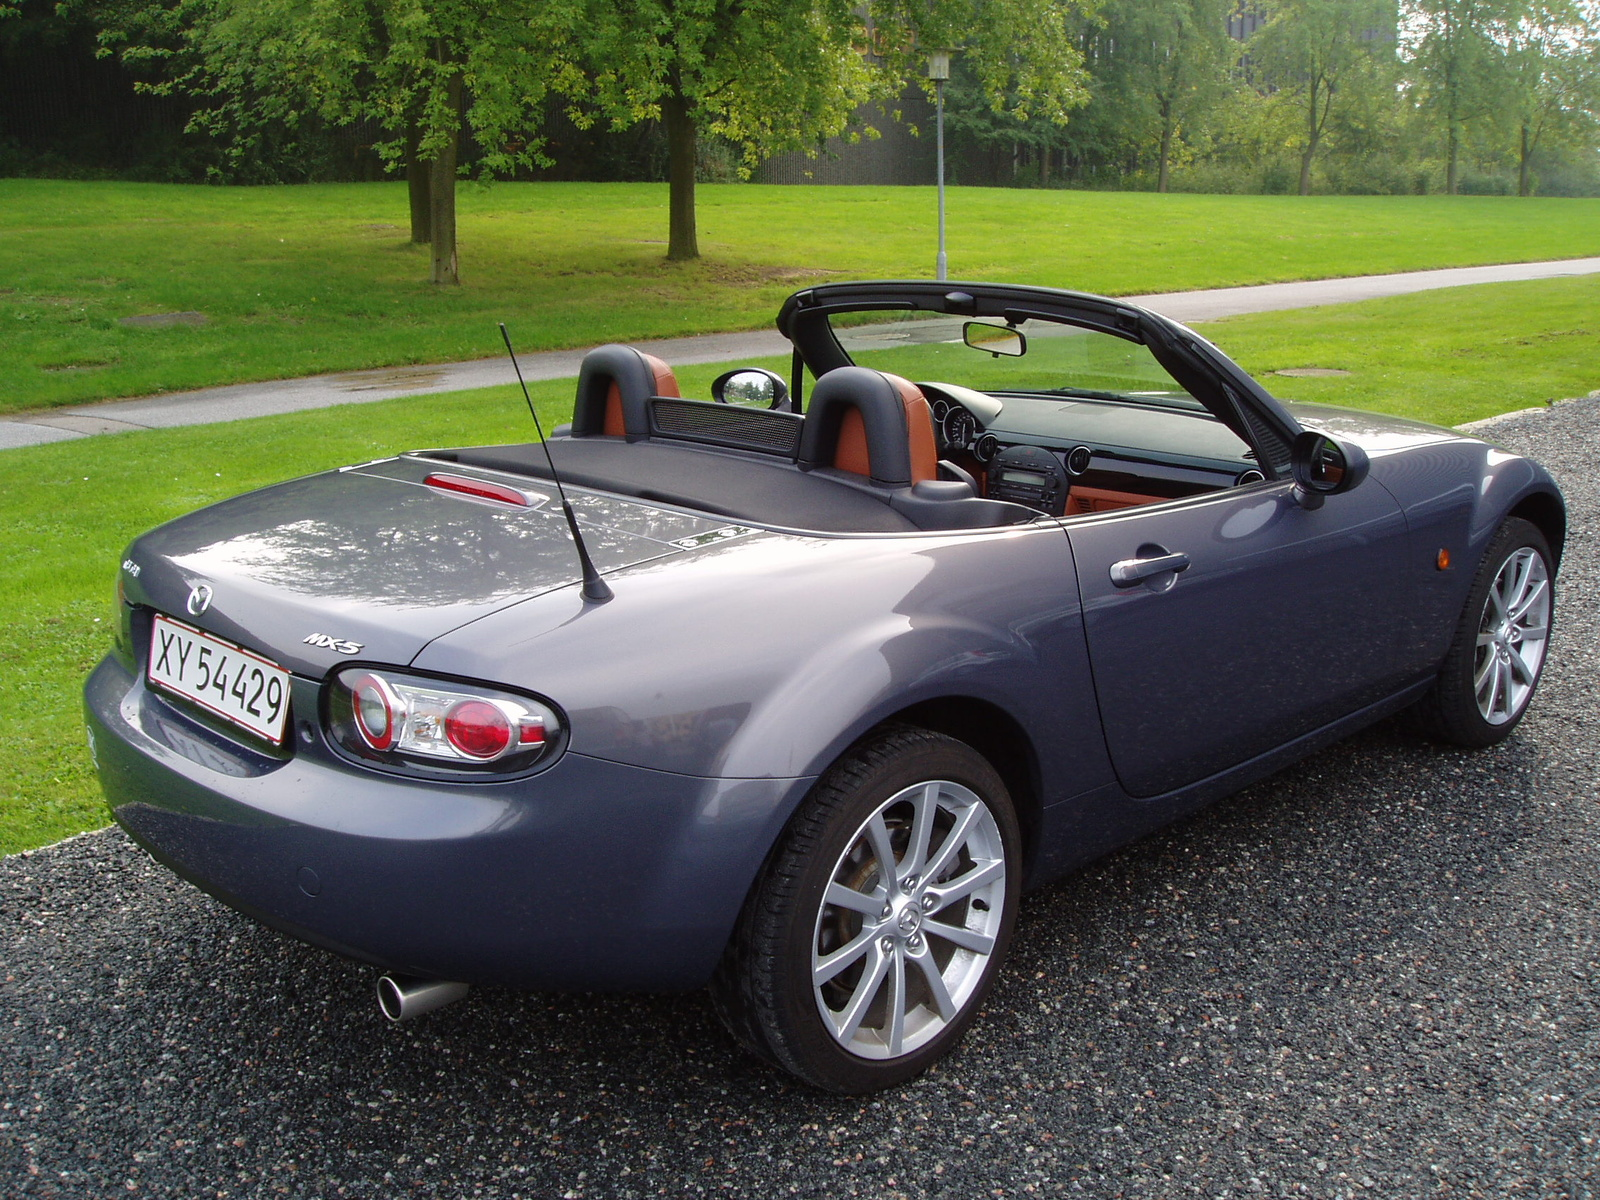 paint code for mk3 body interior styling mx 5 owners club forum forum. Black Bedroom Furniture Sets. Home Design Ideas